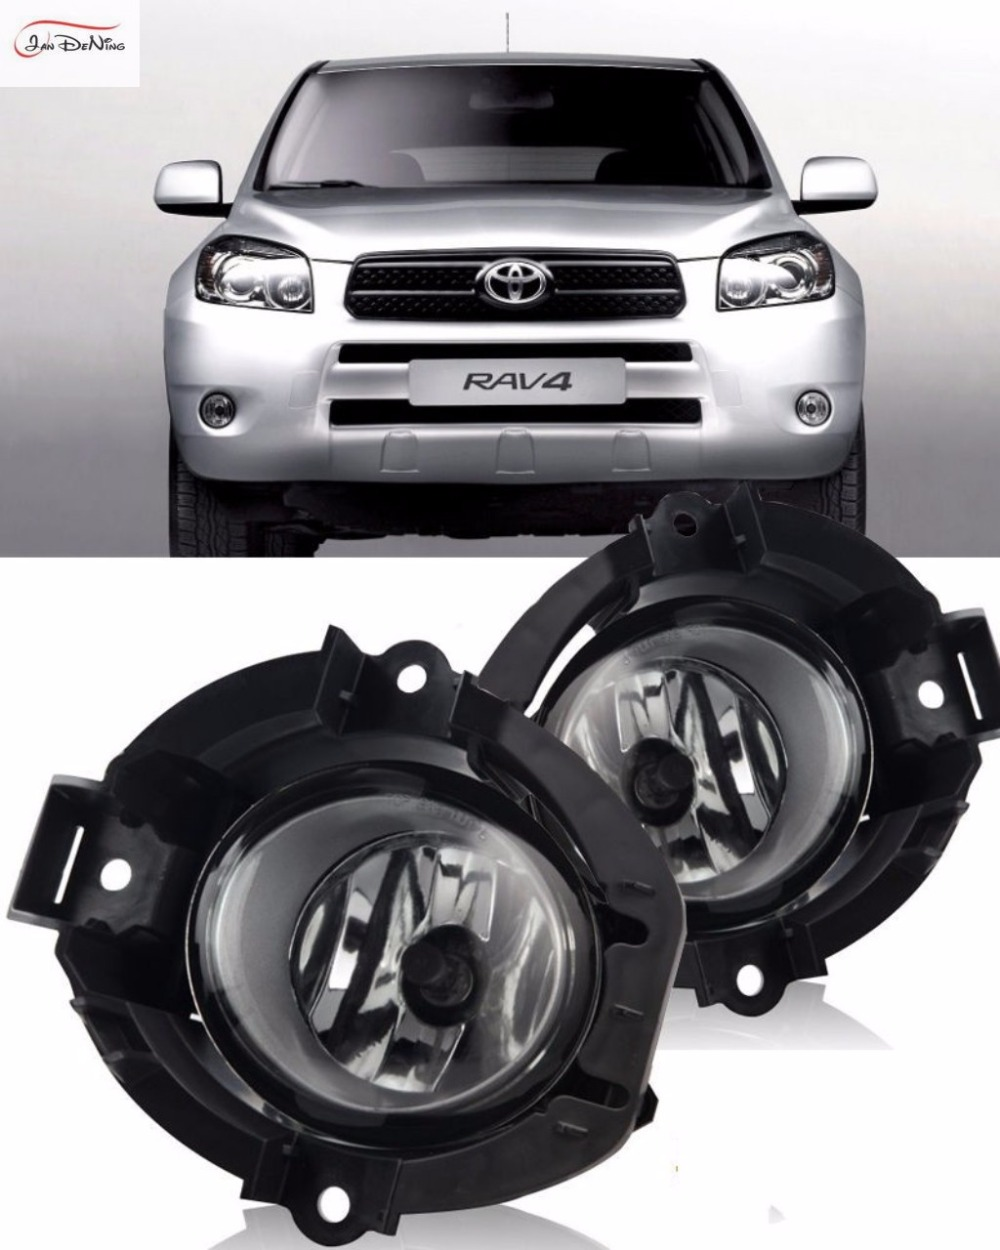 JanDeNing Car Fog Lights For 2006 2007 2008 Toyota RAV4 Clear Front Fog Lamp Cover Trim Replace assembly kit black (one Pair) car fog lights lamp for mitsubishi triton 2 door 2009 on clear lens pair set wiring kit fog light set free shipping